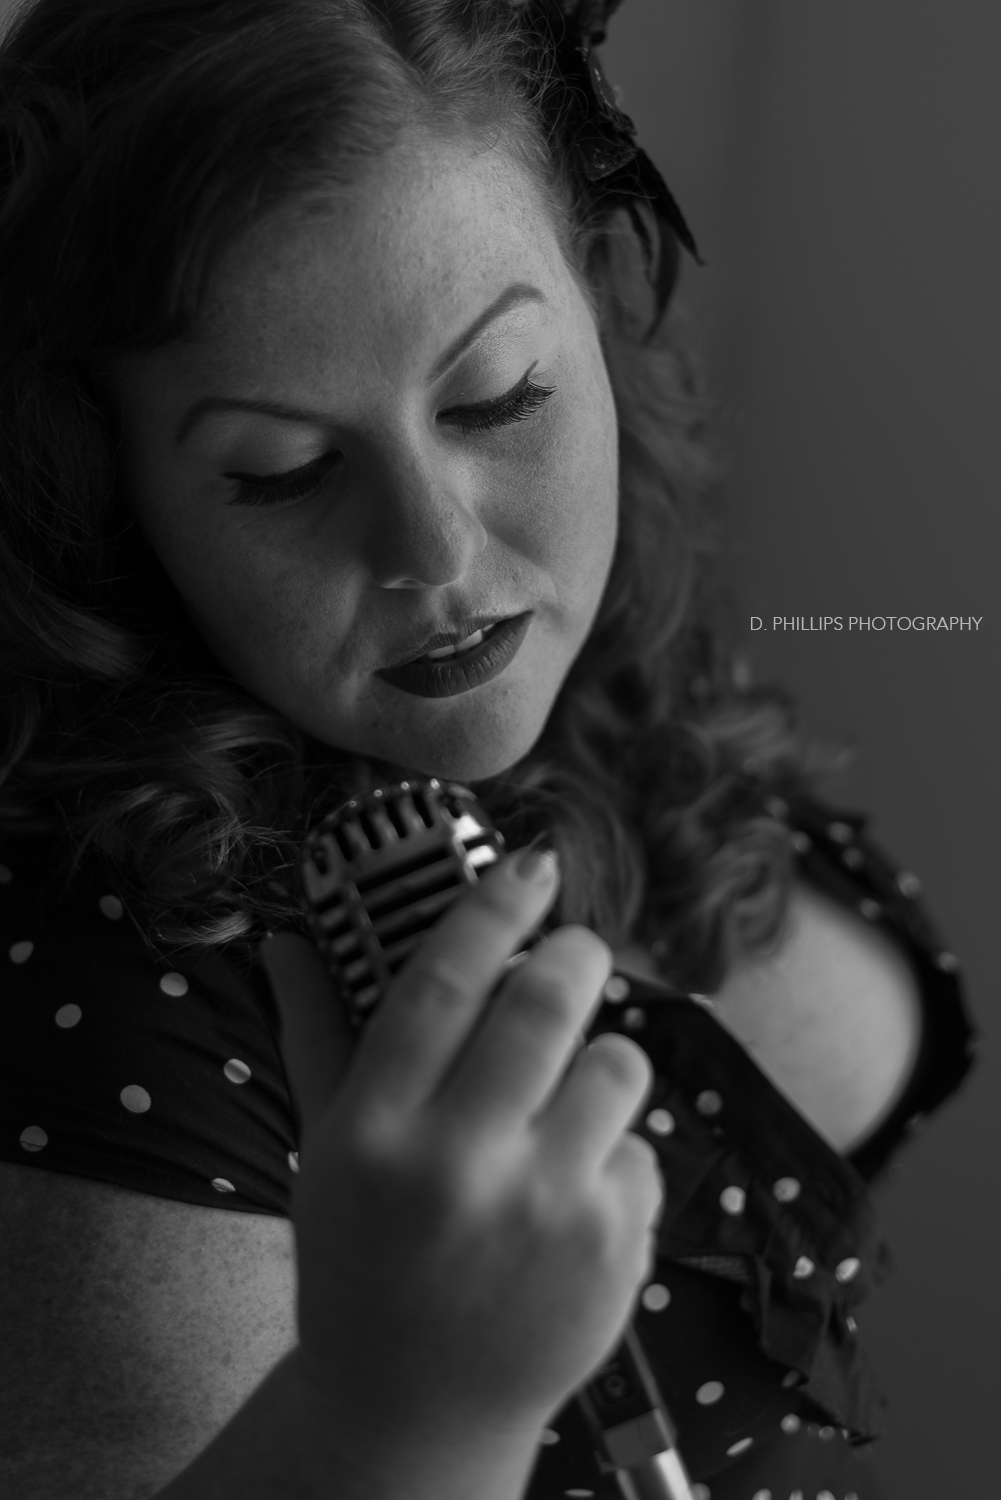 Sultry women's boudoir  photo inspiration | D. Phillips Photography, Tennessee boudoir photographer